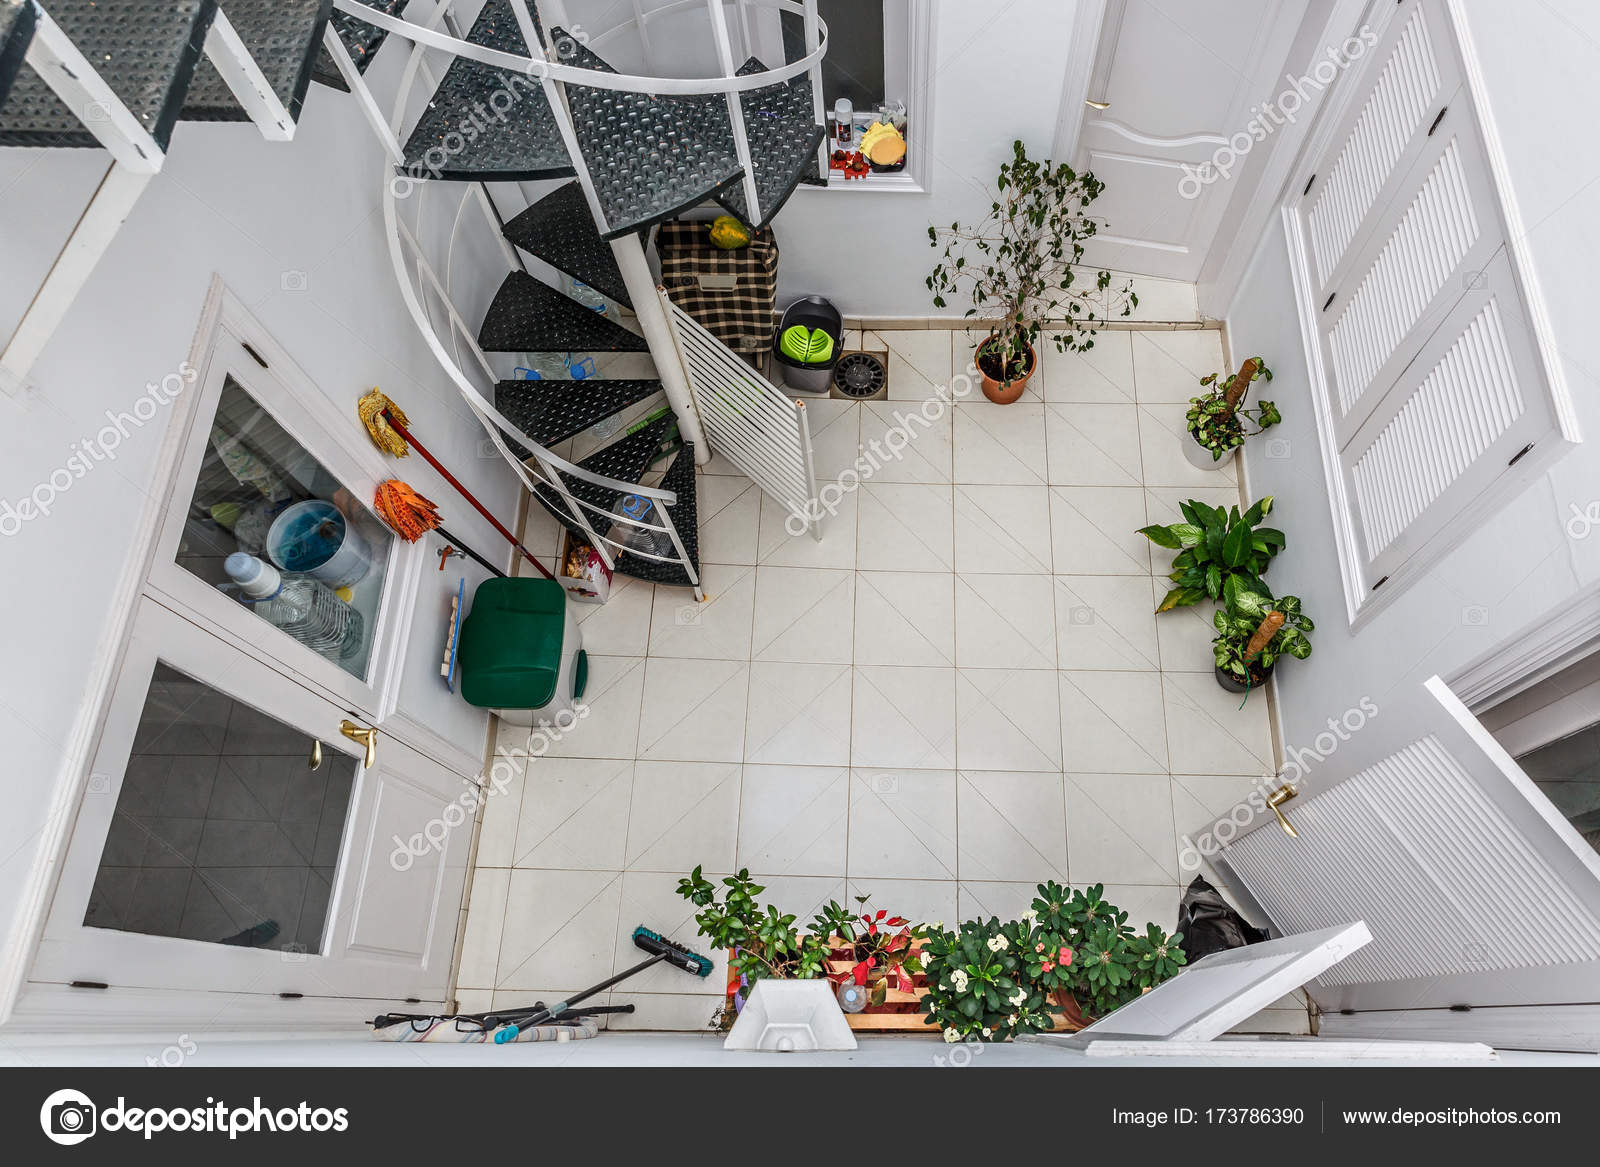 View From Above Of A Patio With Plants Mops Cubes And Stairs